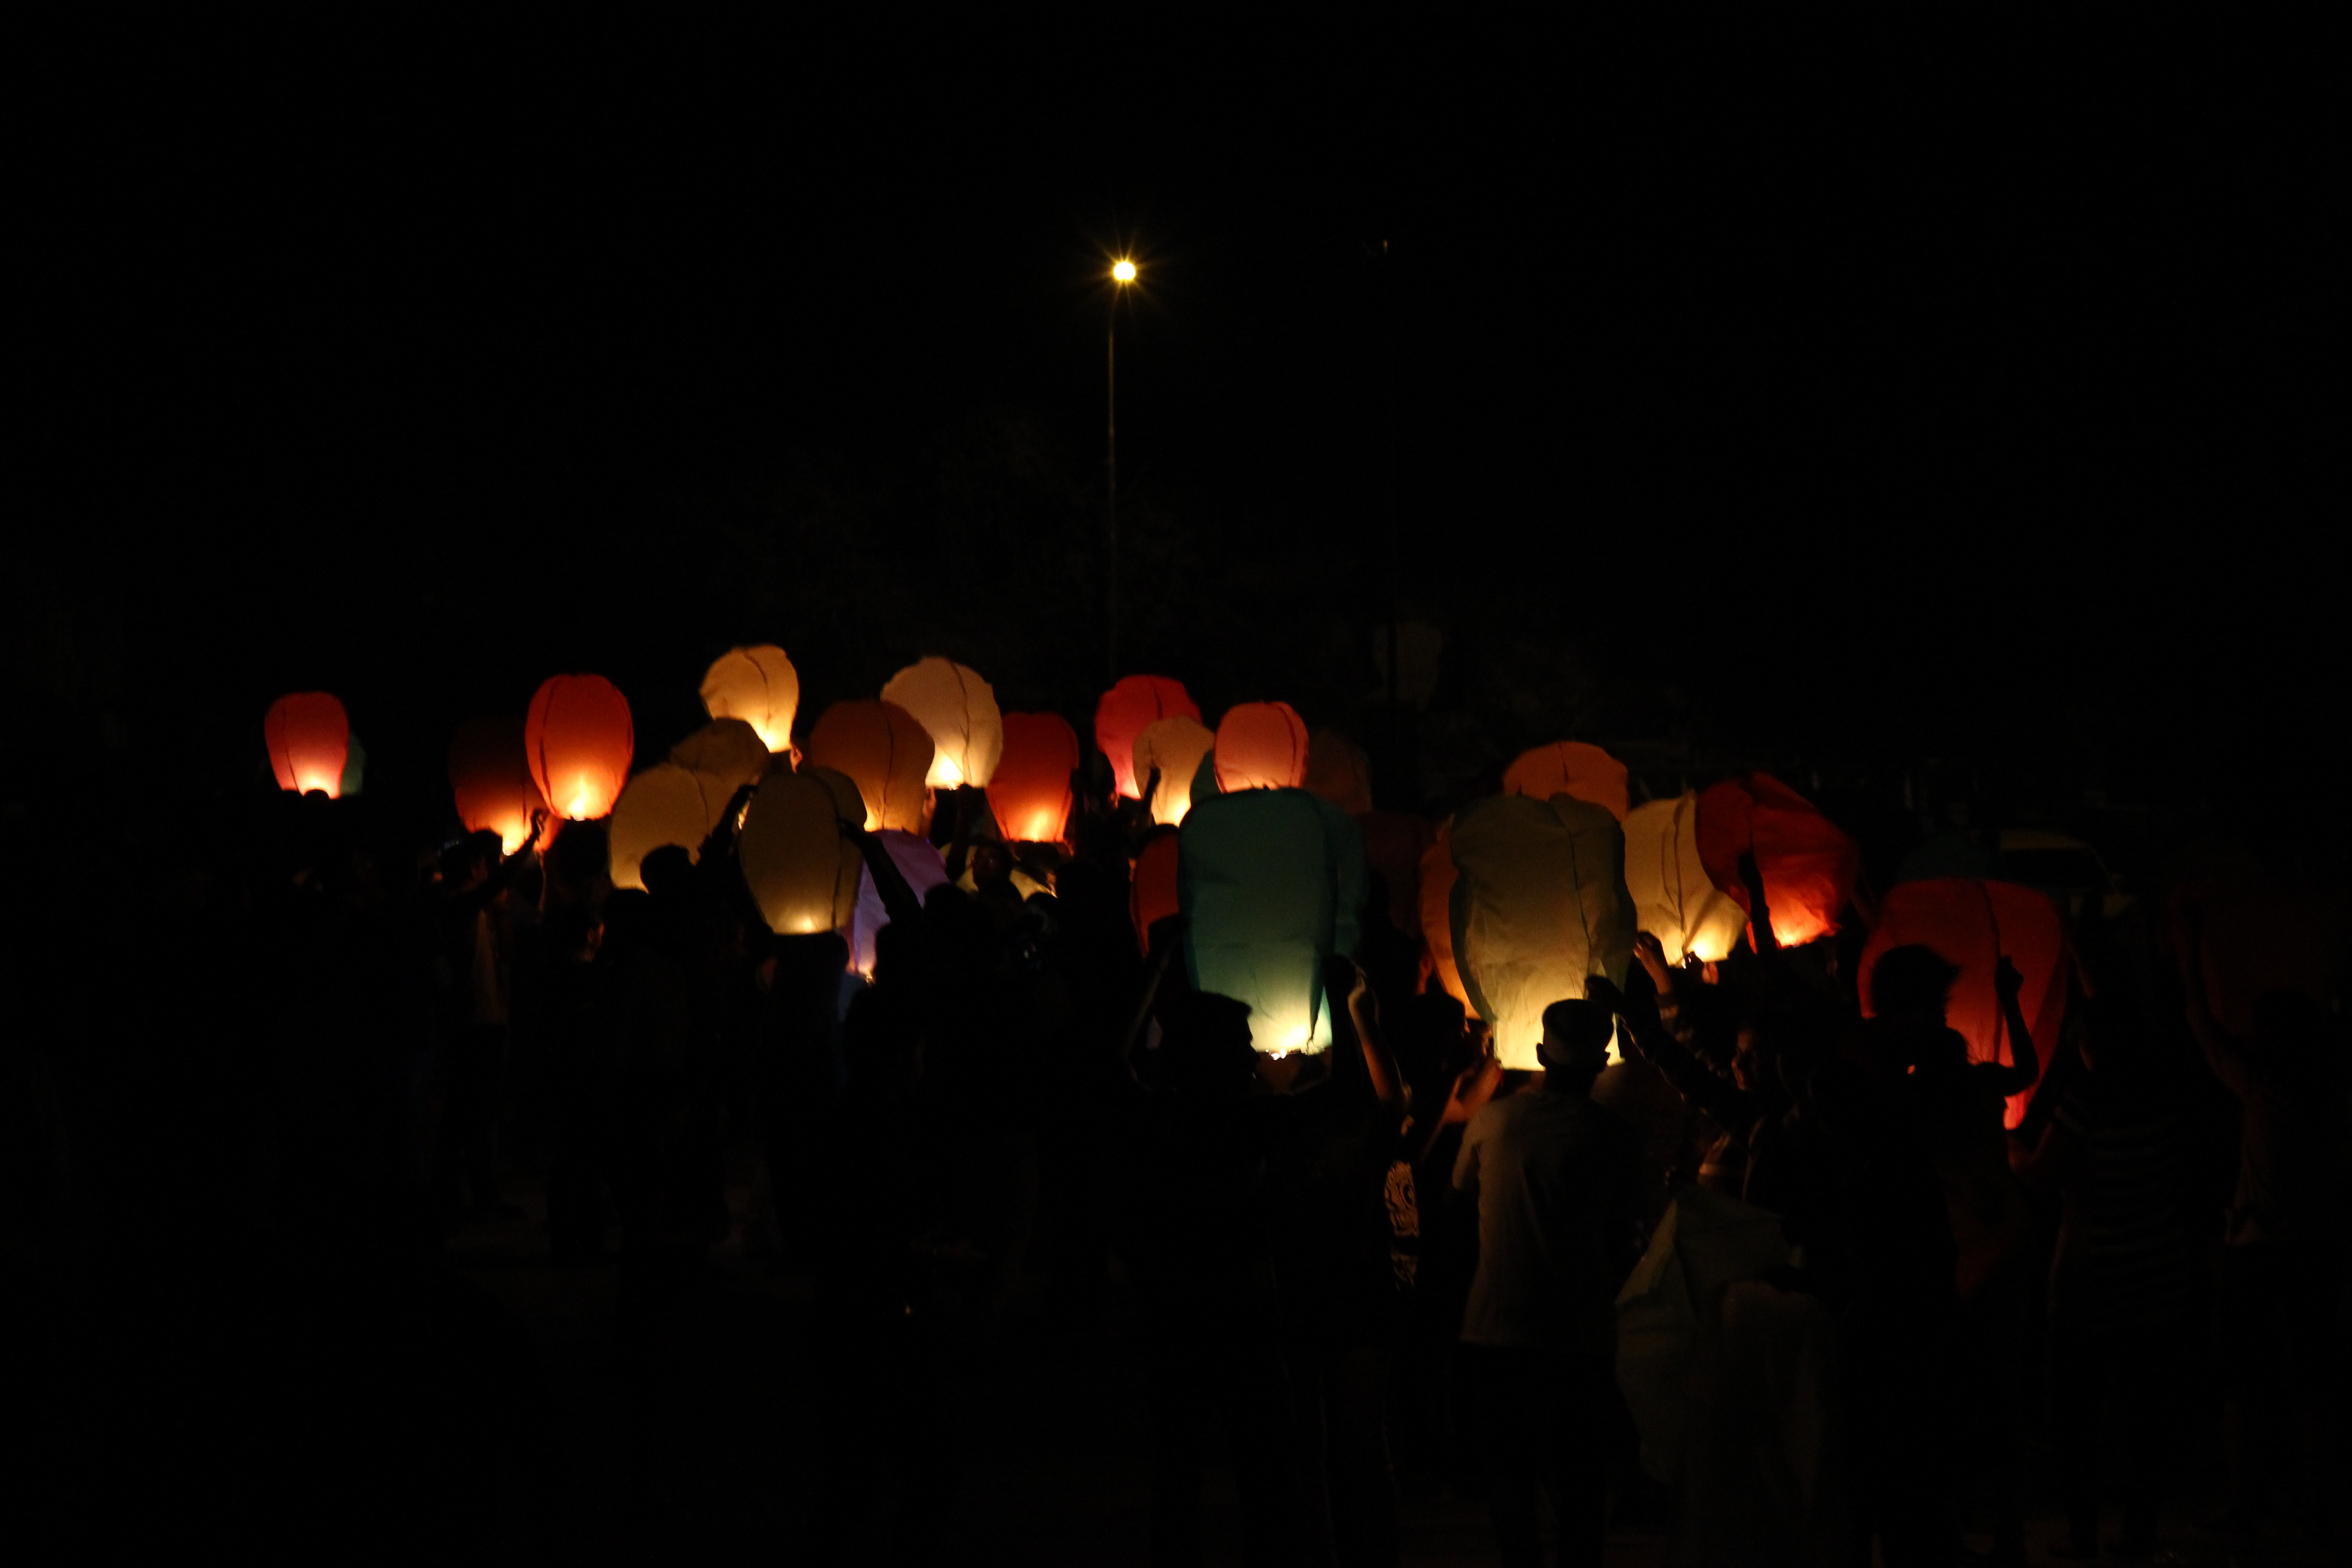 [Updated Photos] Sky Full of Lighters – 2013